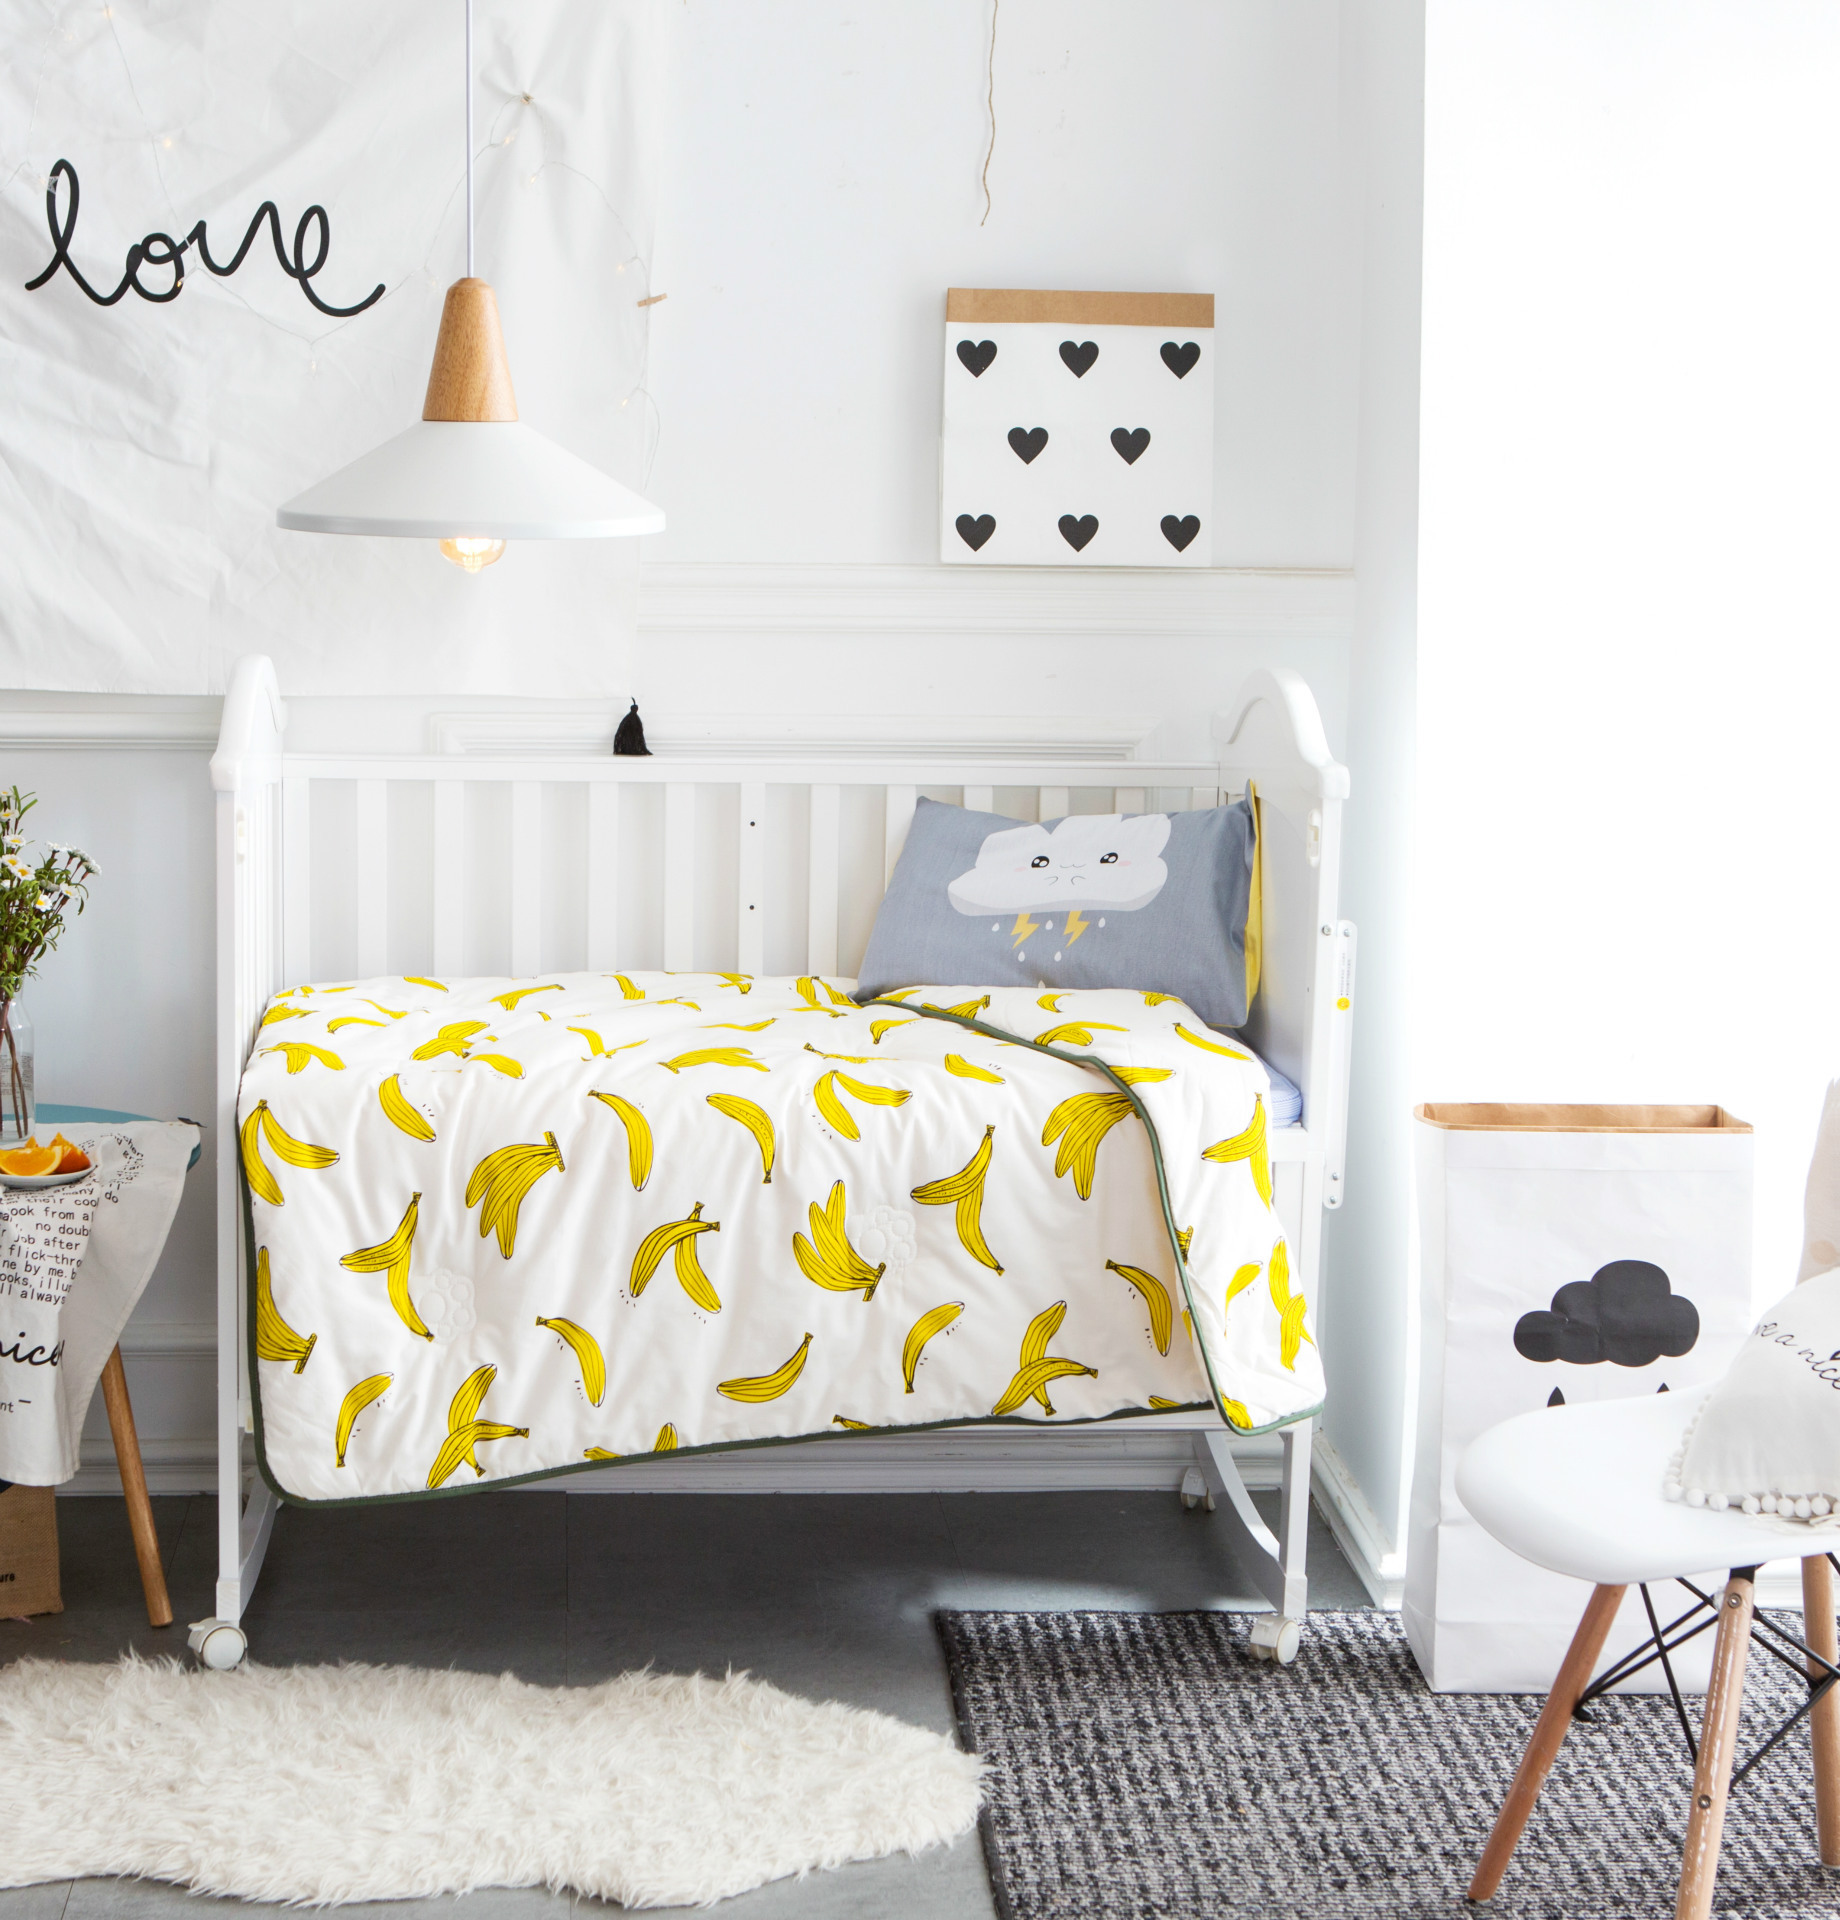 Free baby bed quilt patterns - 110x140cm Baby Quilt Baby Summer Duvet Air Conditioner Blanket For Baby Bed Crib Bedding Set Swan Banana Cactus Pattern Design